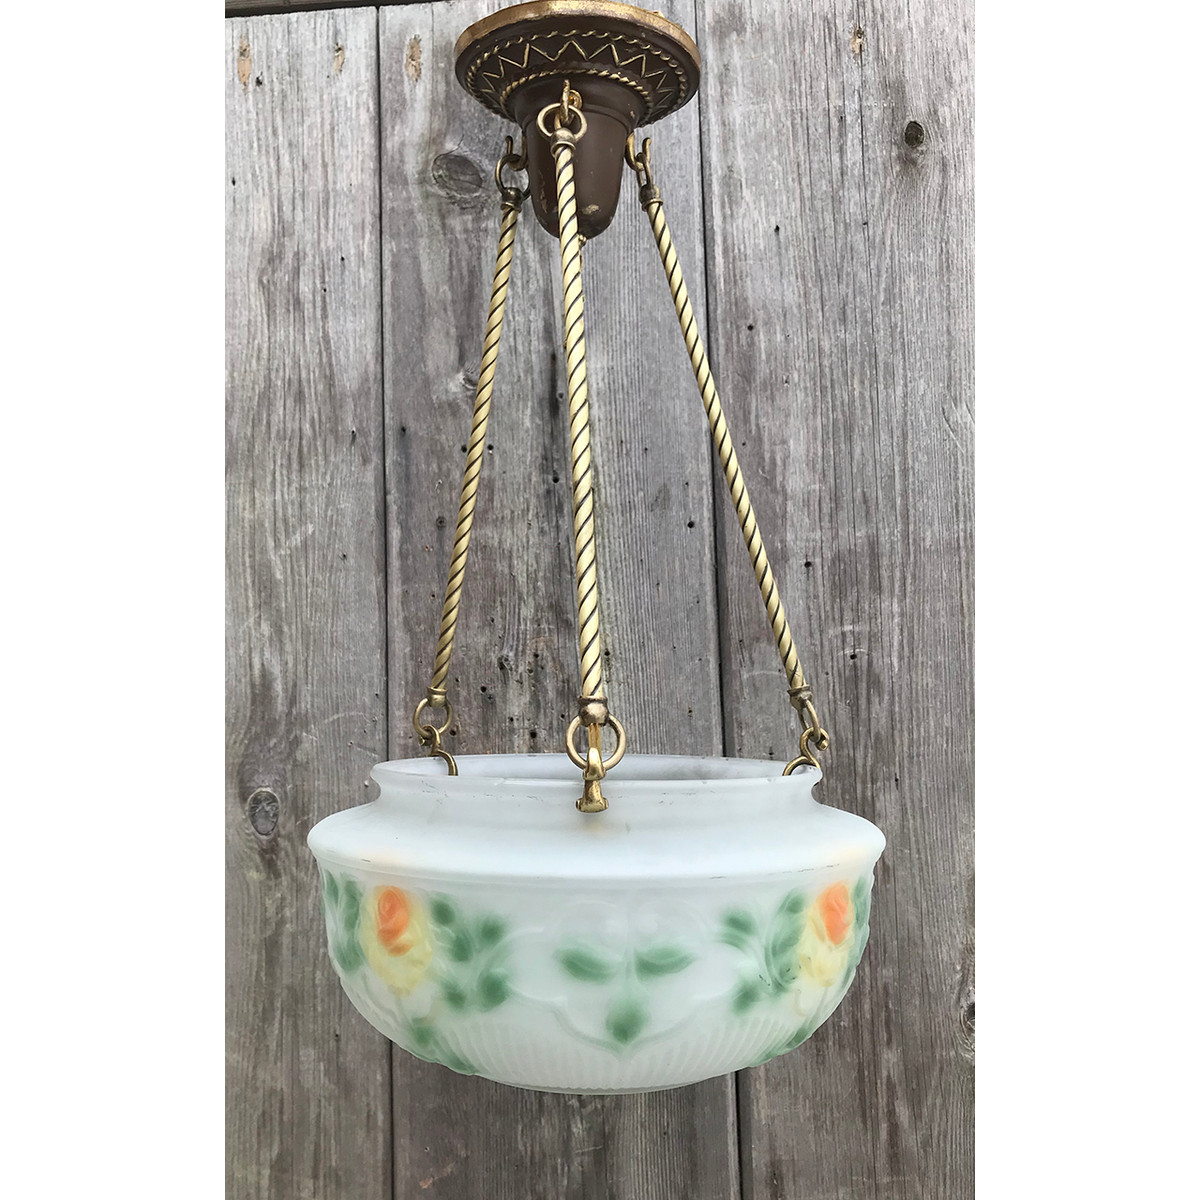 L19041 - Antique Reverse Painted Bowl Fixture